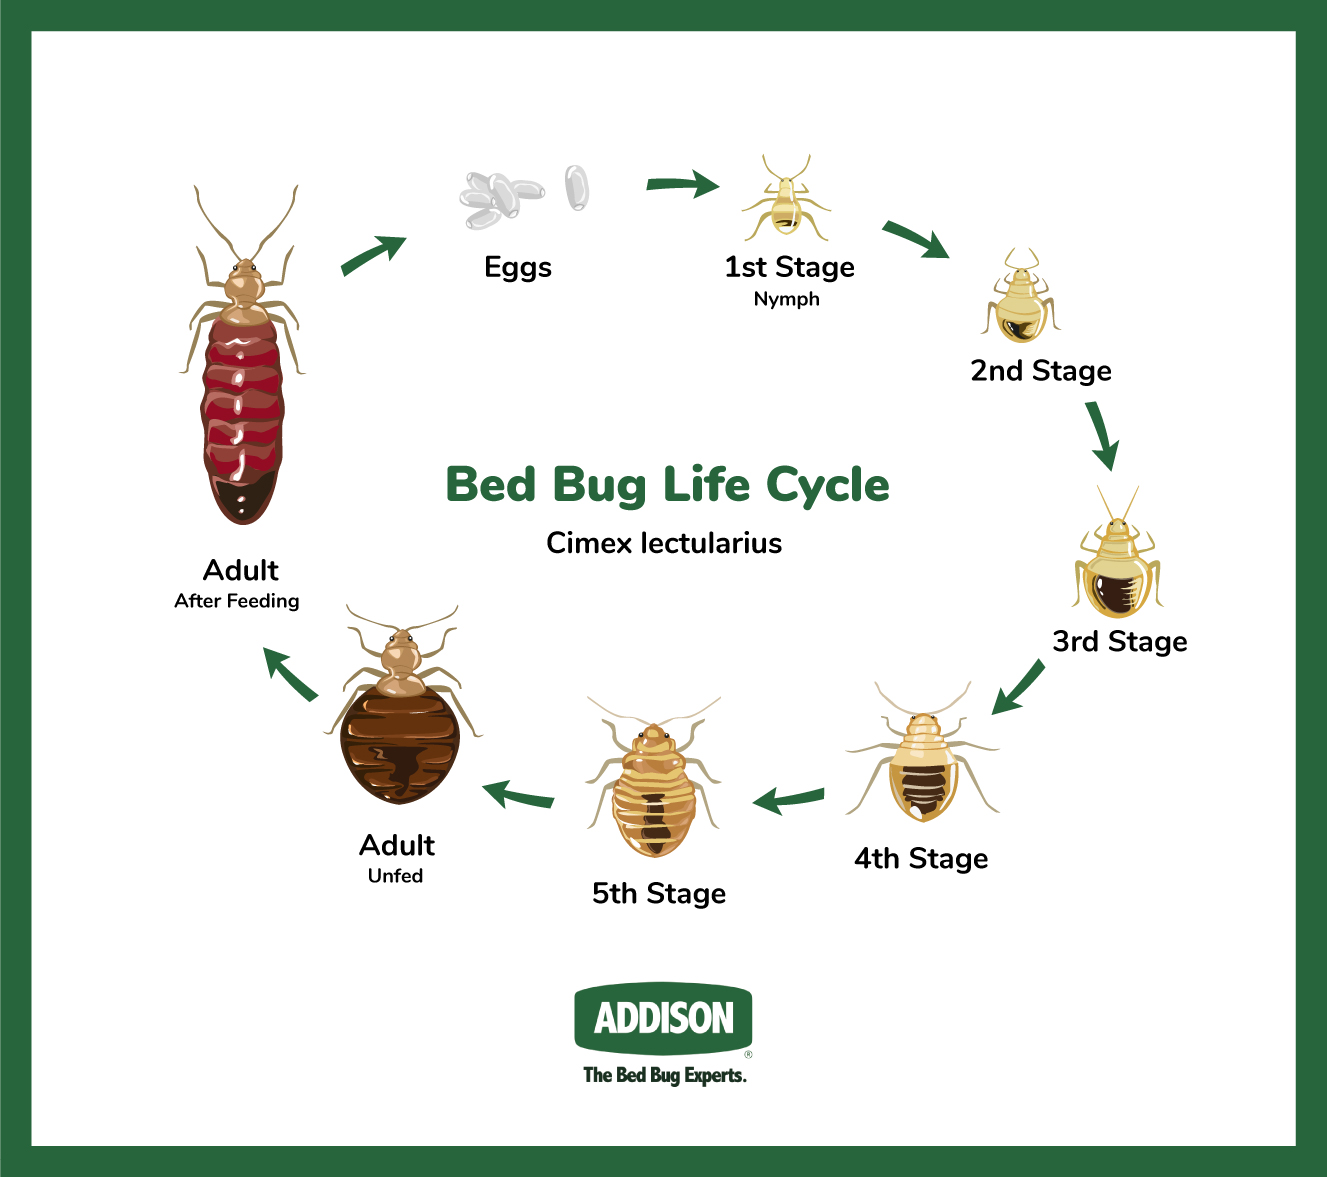 Identifying Bed Bugs at different stages in their life cycle.